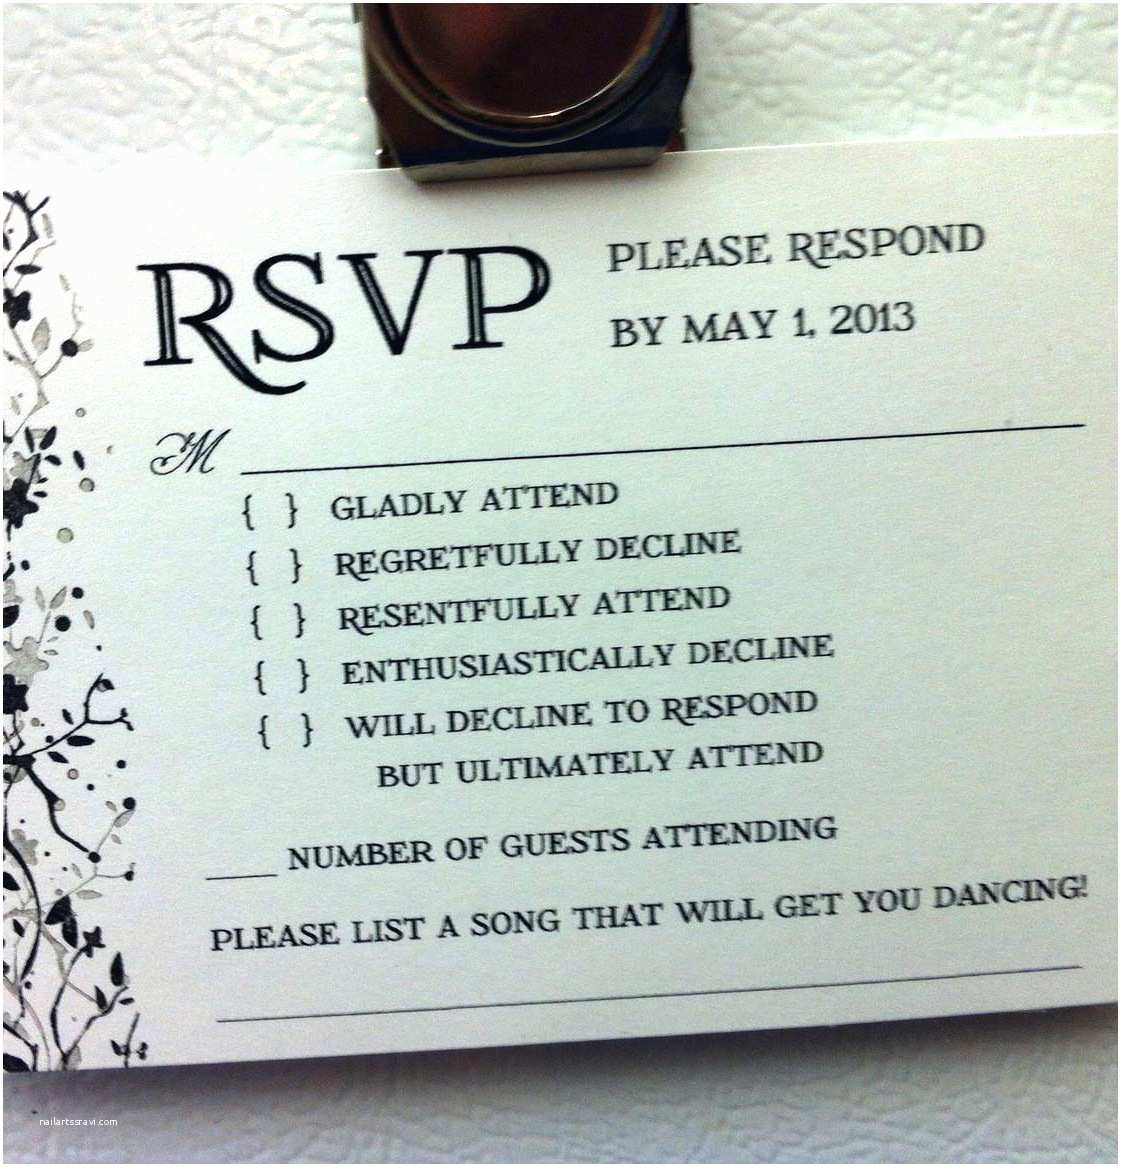 Hilarious Wedding Invitations Buboblog A New York City Dad Smart Idea for A Wedding